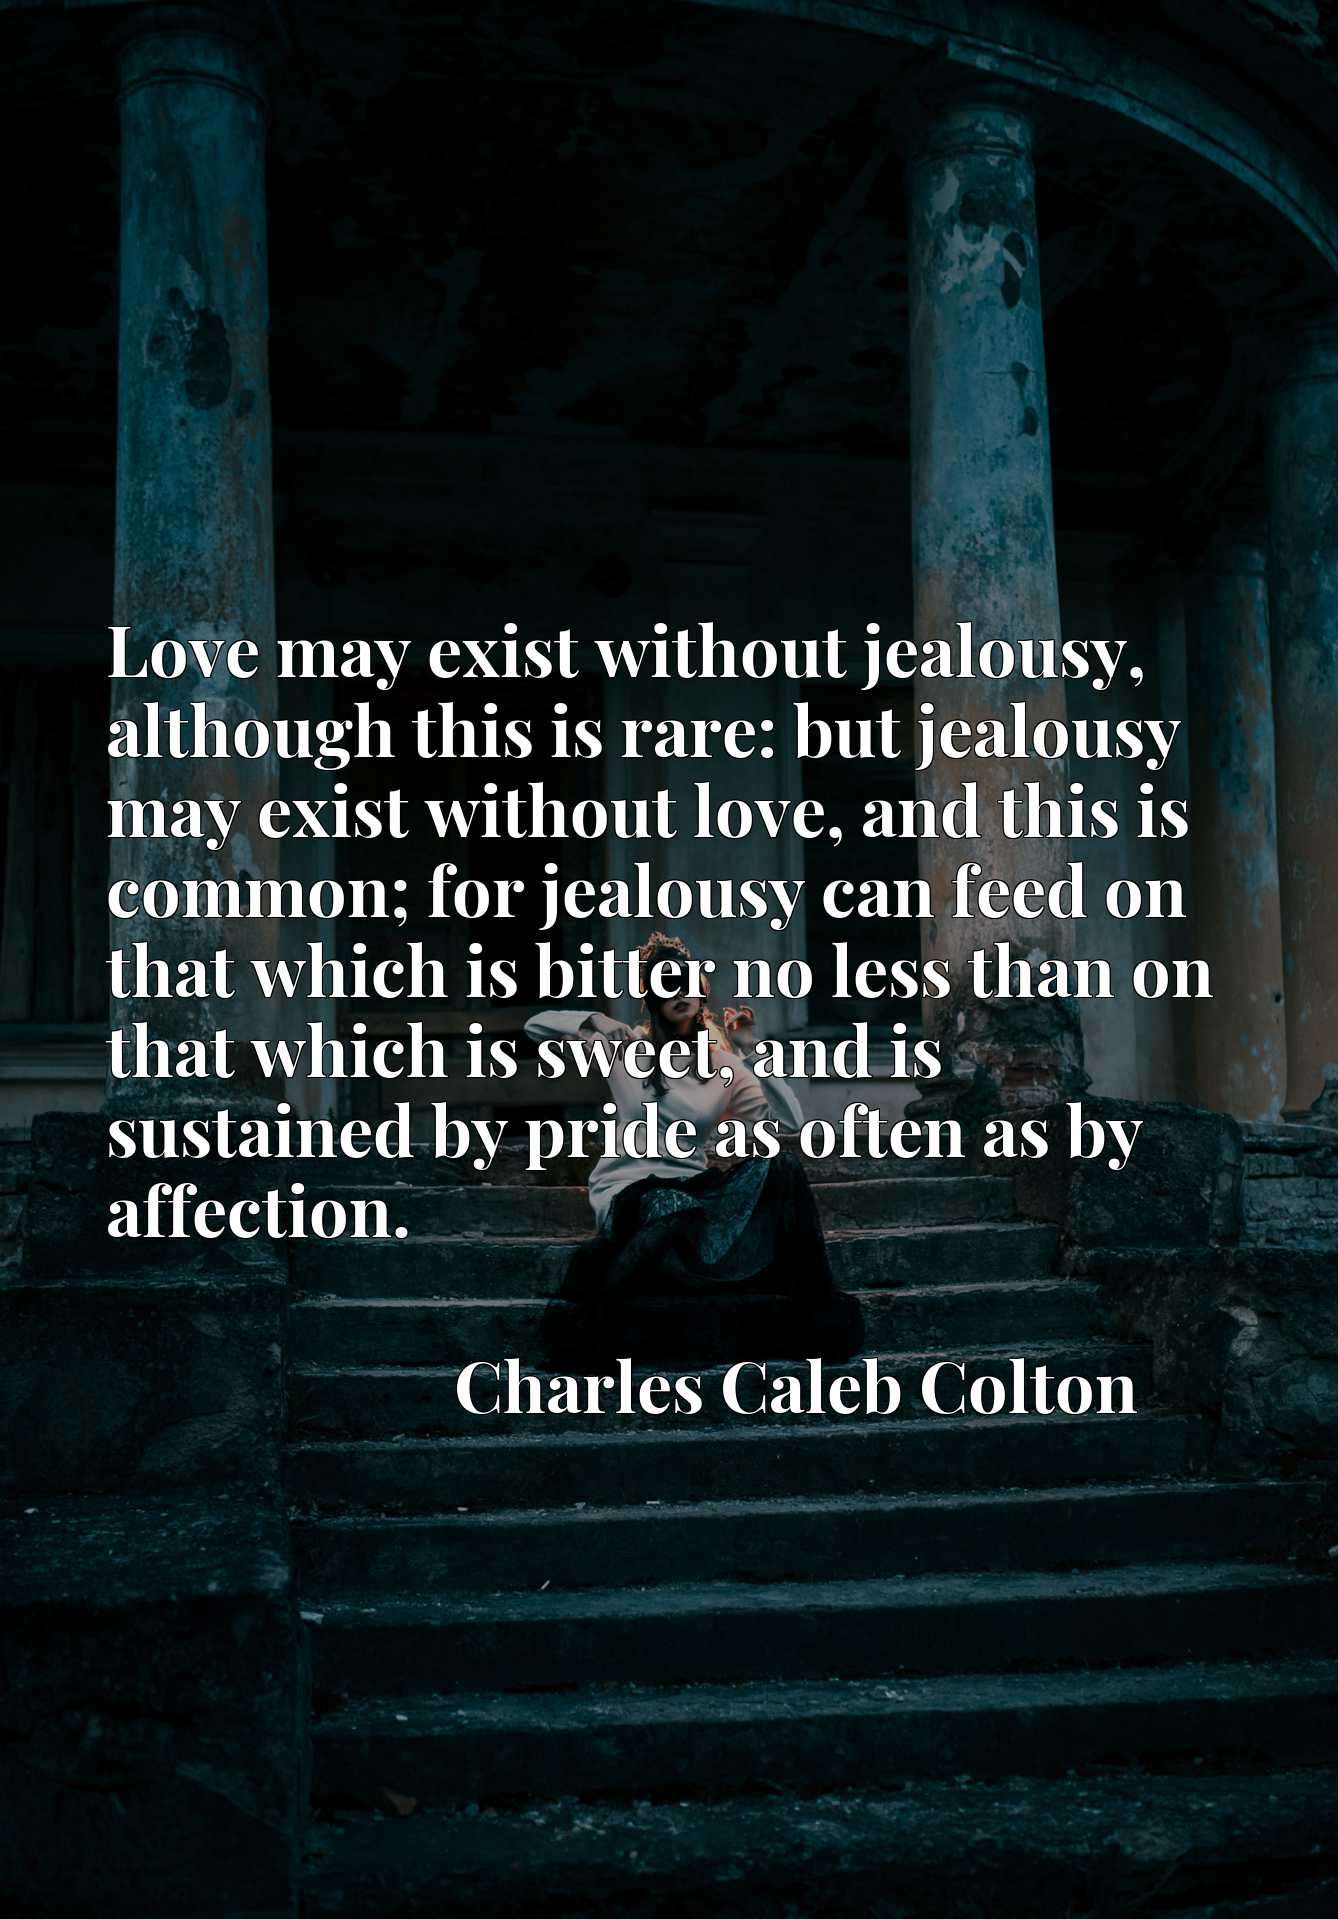 Love may exist without jealousy, although this is rare: but jealousy may exist without love, and this is common; for jealousy can feed on that which is bitter no less than on that which is sweet, and is sustained by pride as often as by affection.